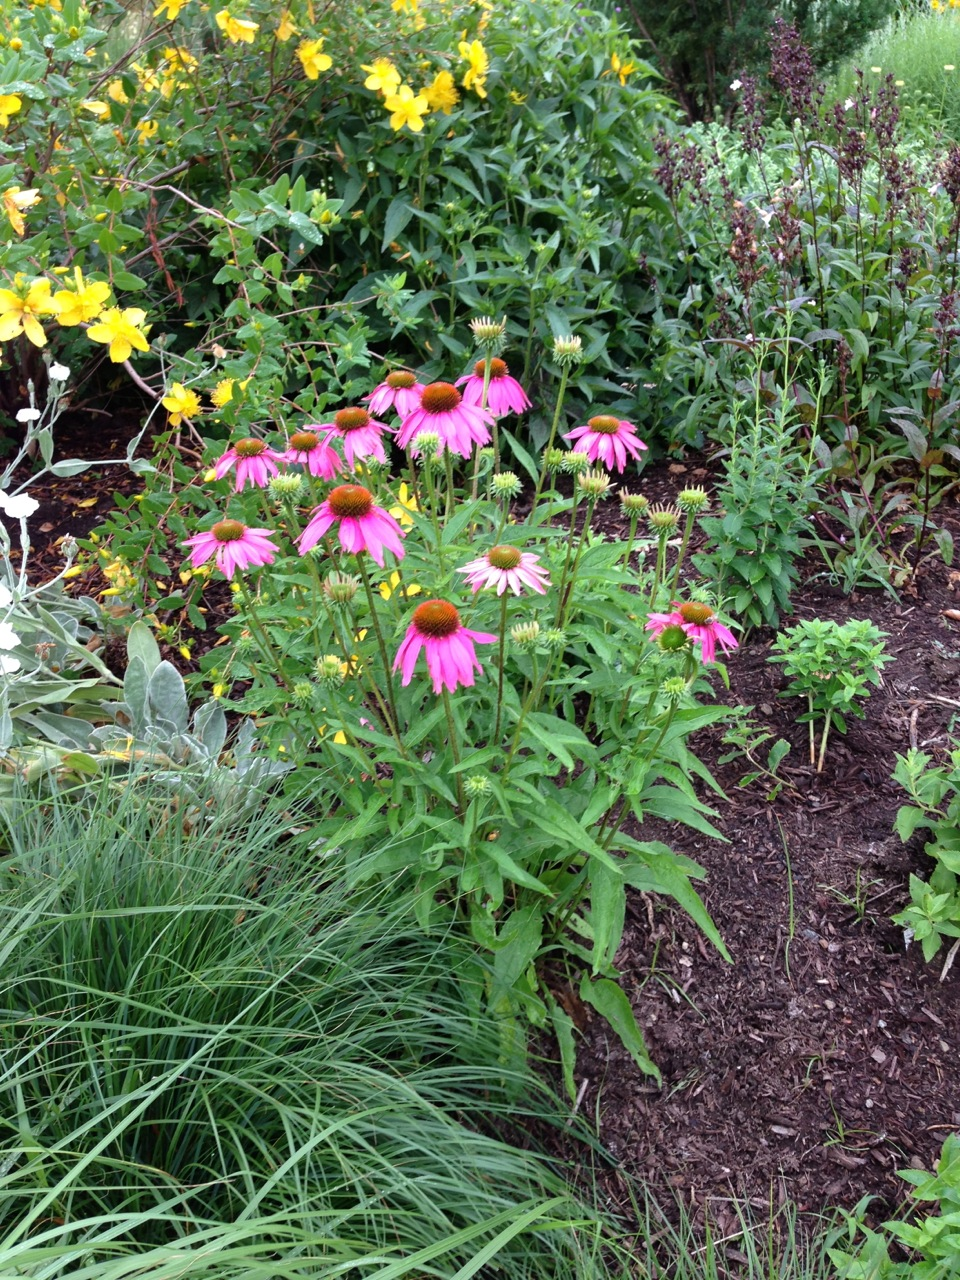 The summer perennial garden will bloom again.